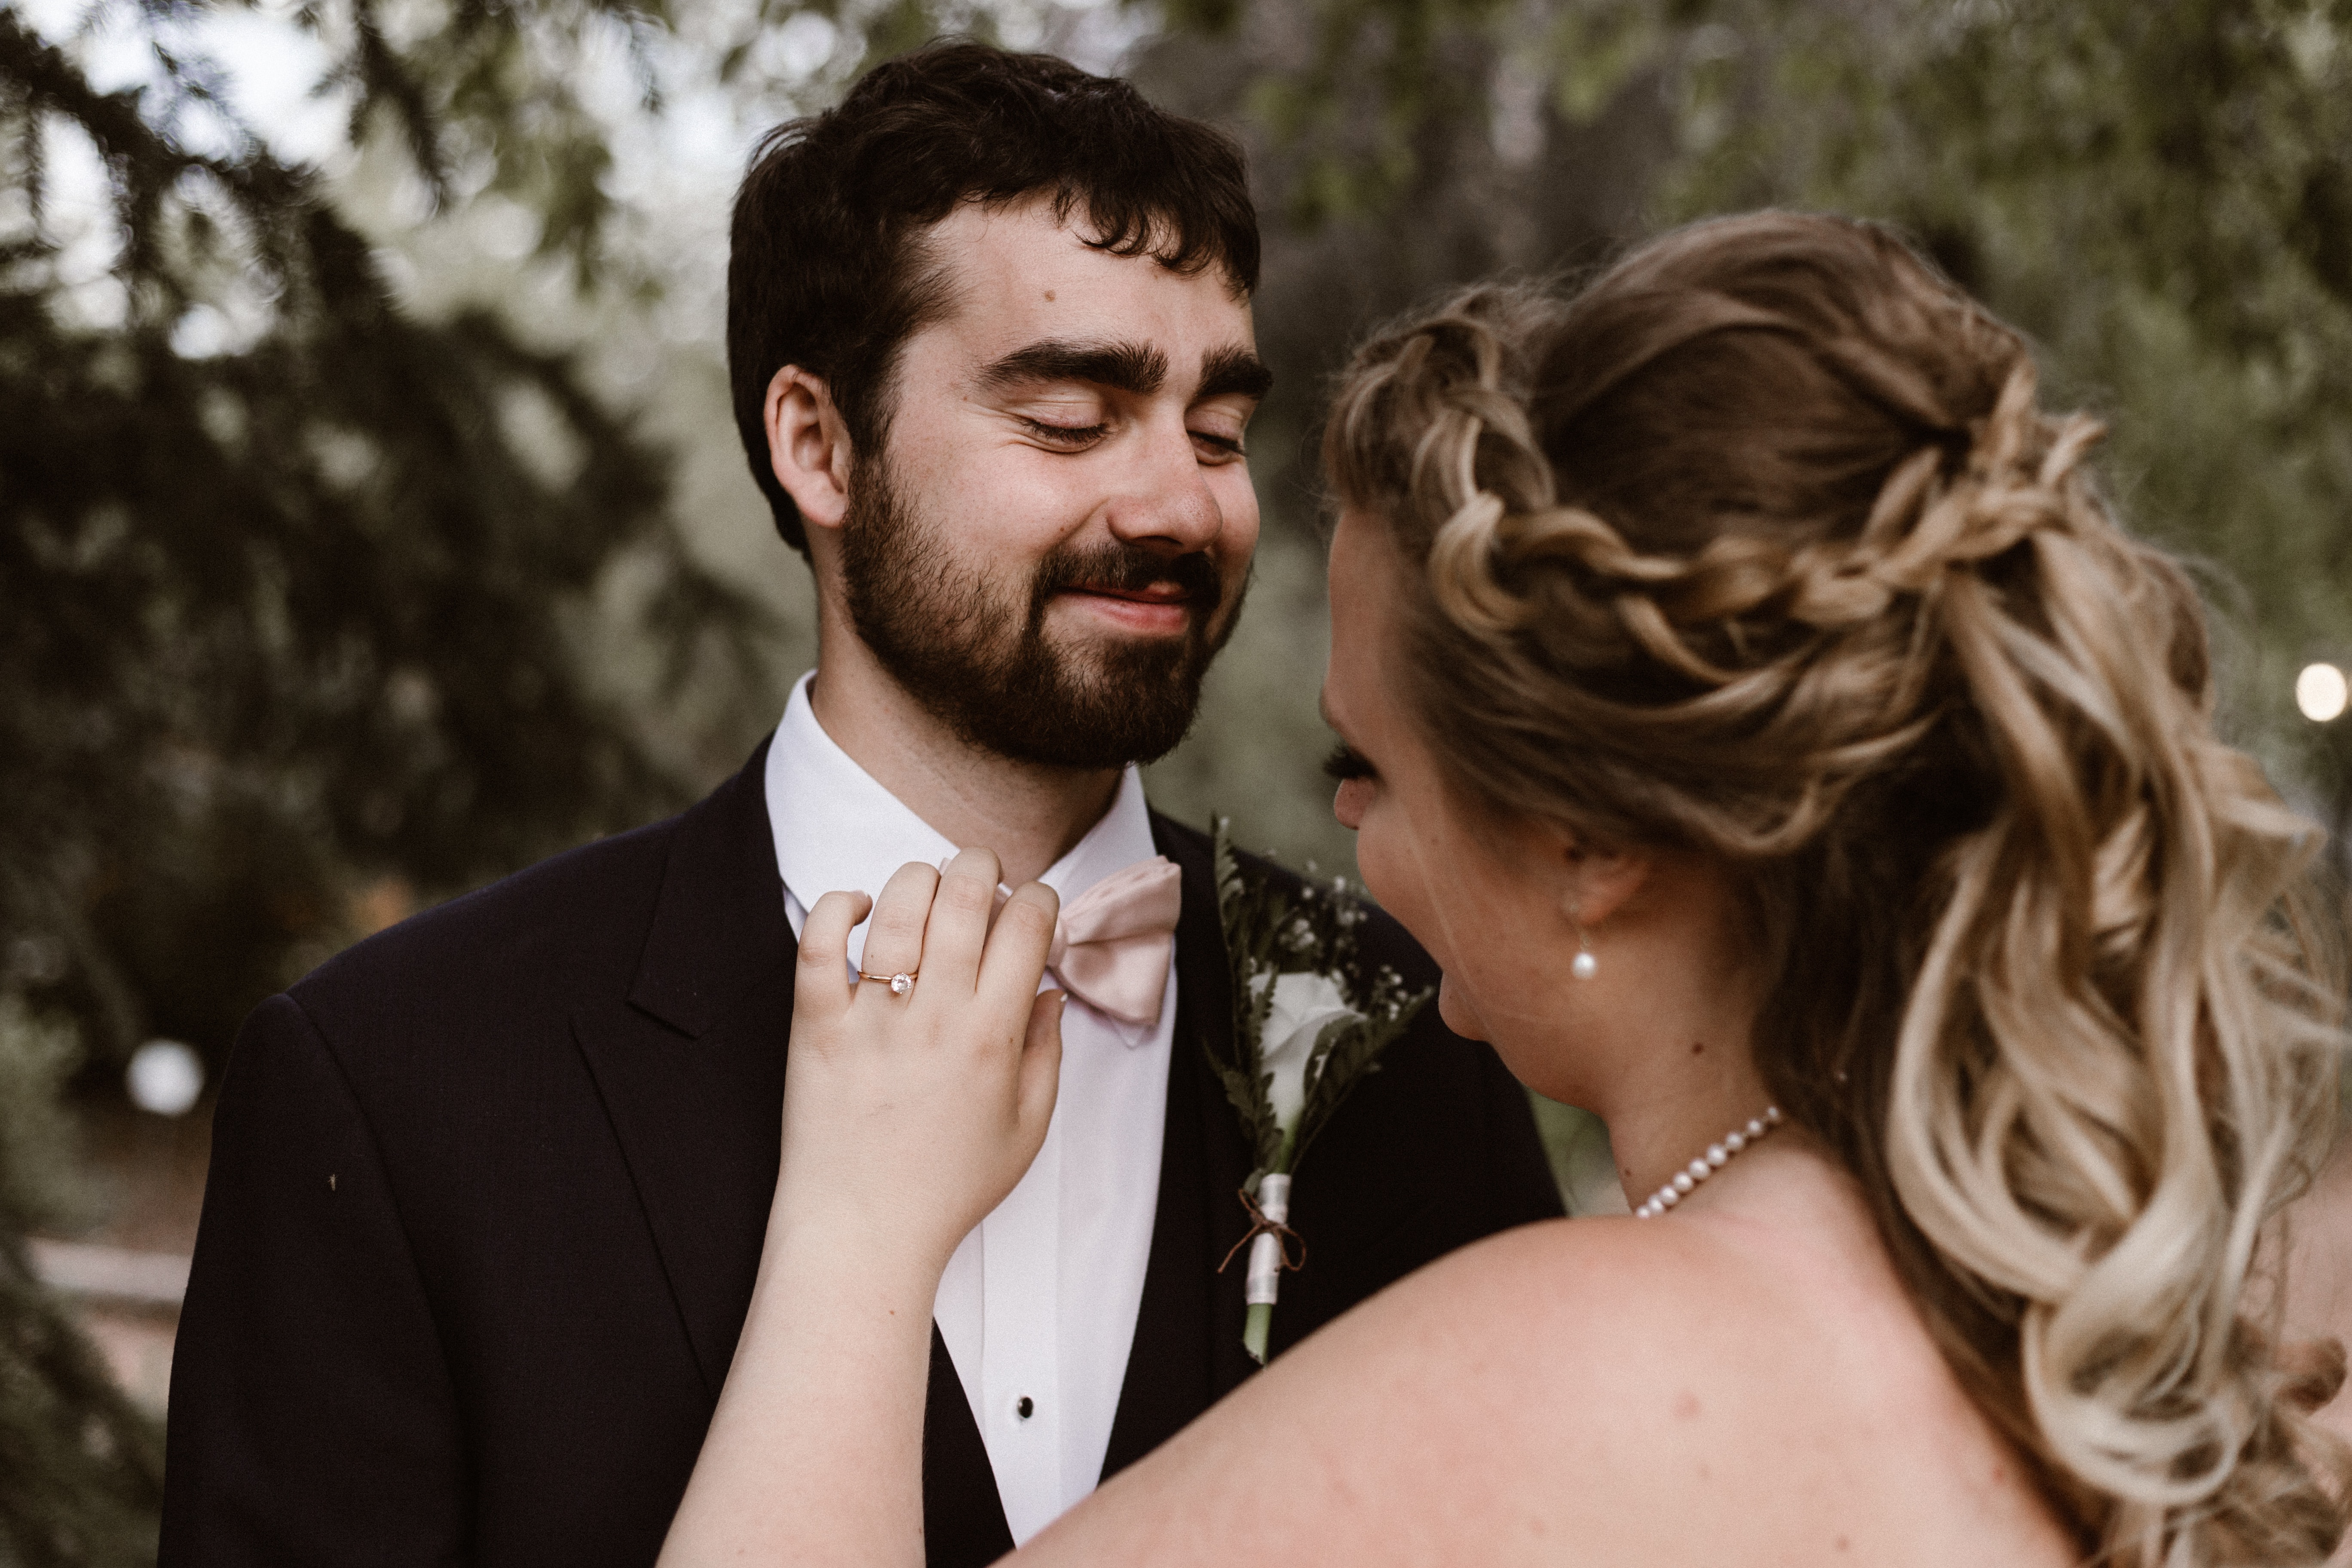 Grooming Routine Before The Wedding: Every Groom Should Know